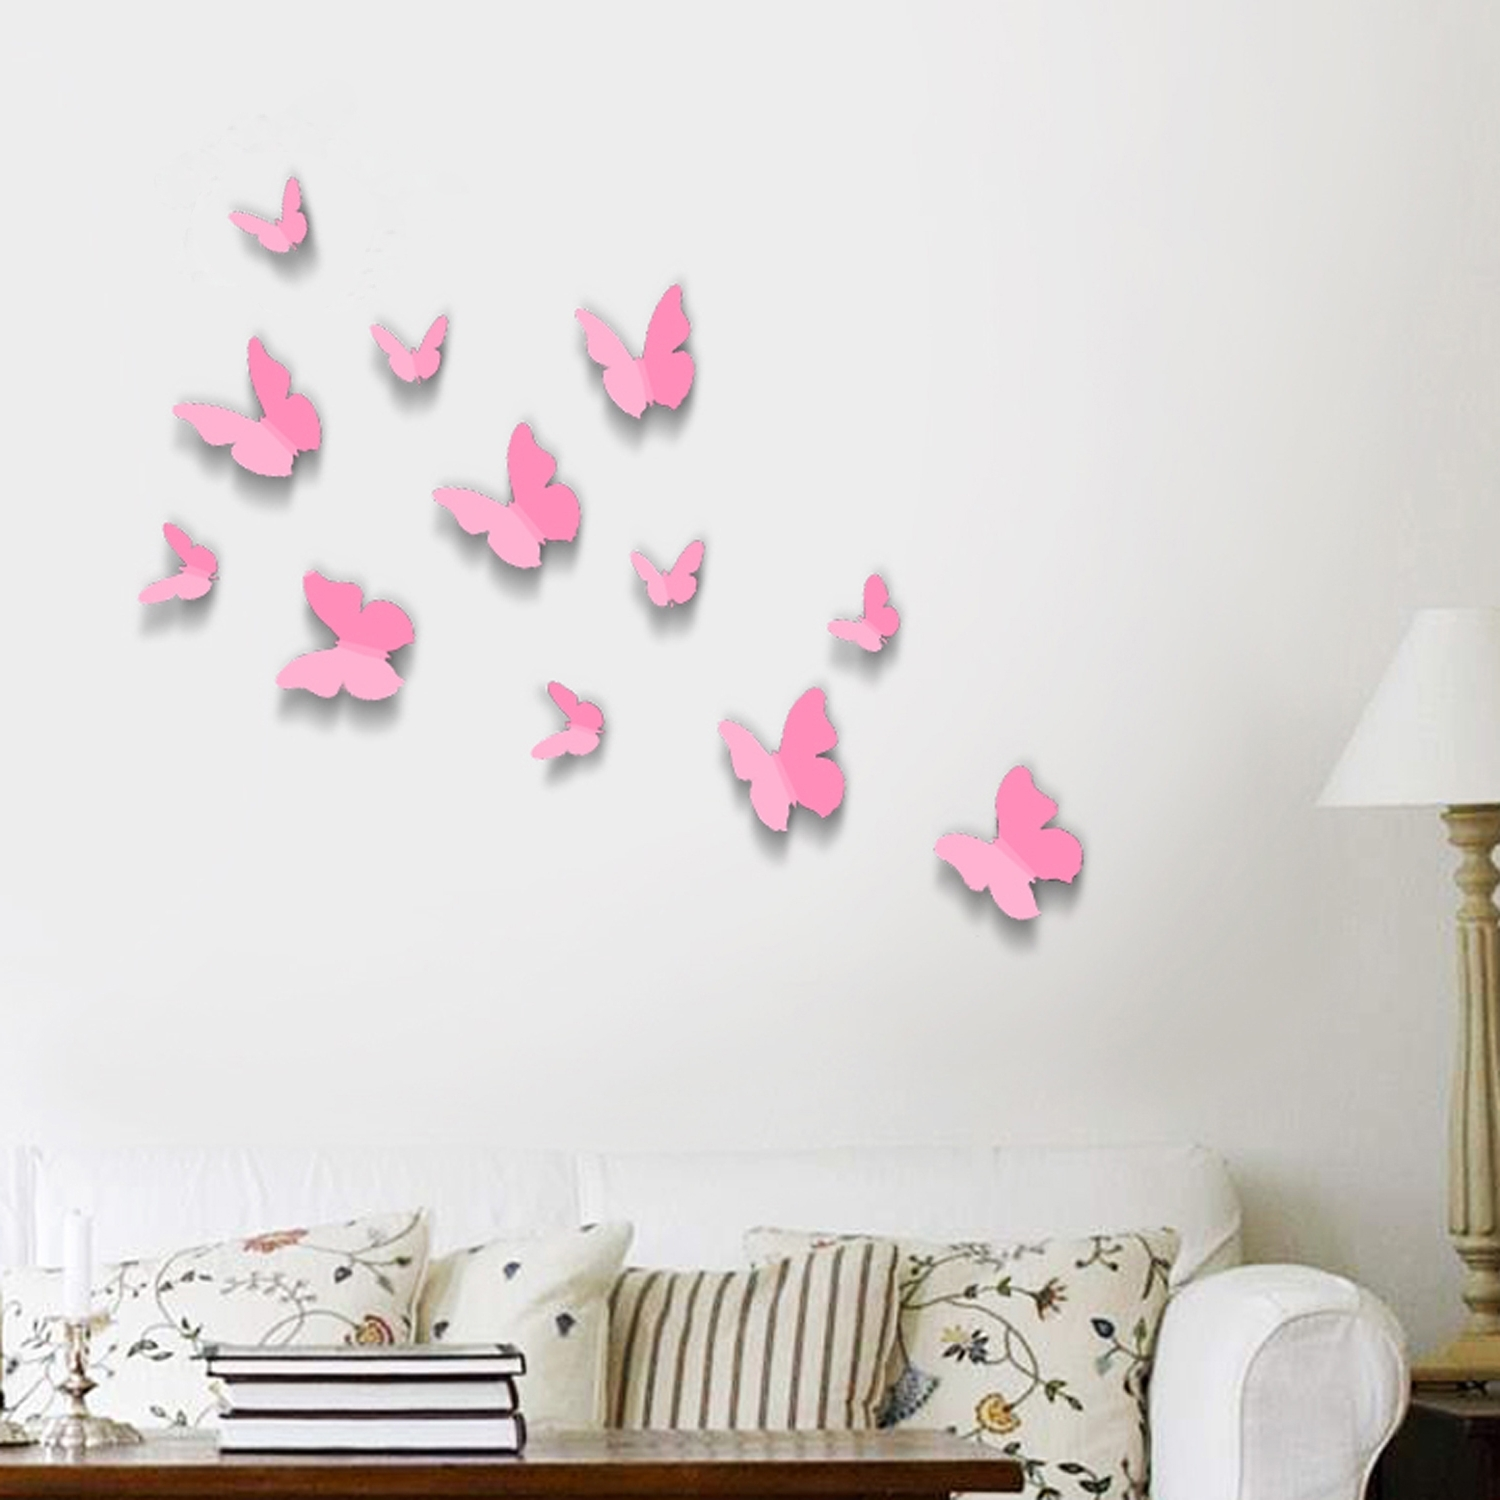 Most Recent Butterfly Wall Art In Pink 3D Butterflies Wall Art Stickers (View 10 of 15)